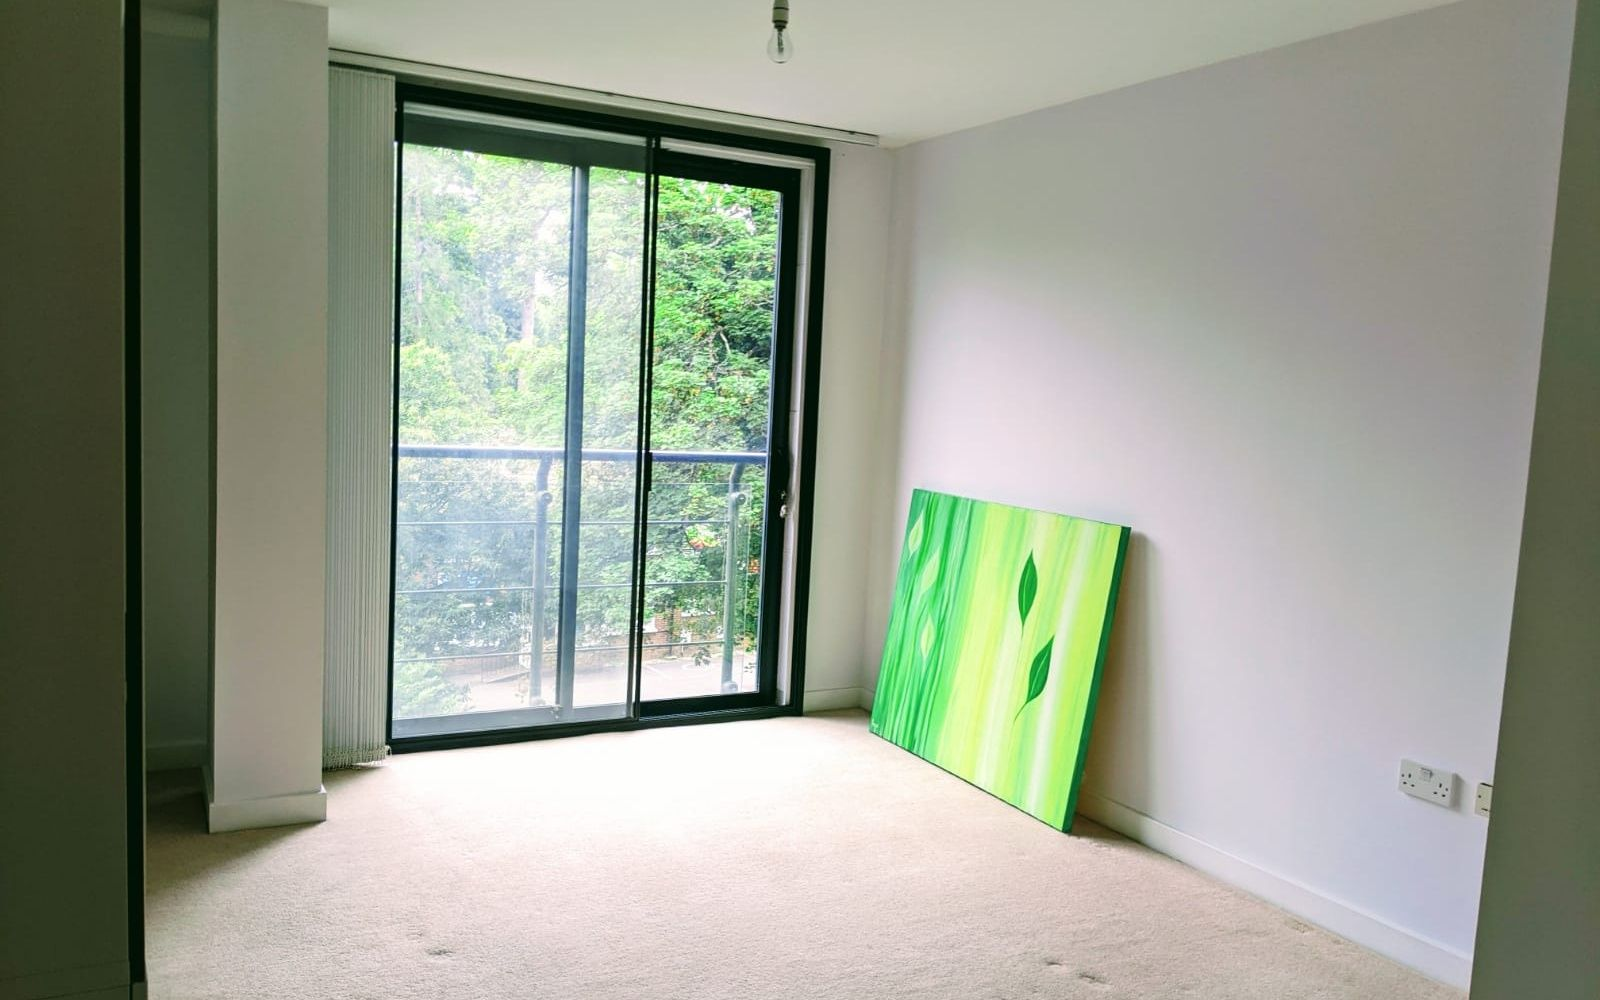 1 bedroom apartment Sale Agreed in Sevenoaks - Photograph 5